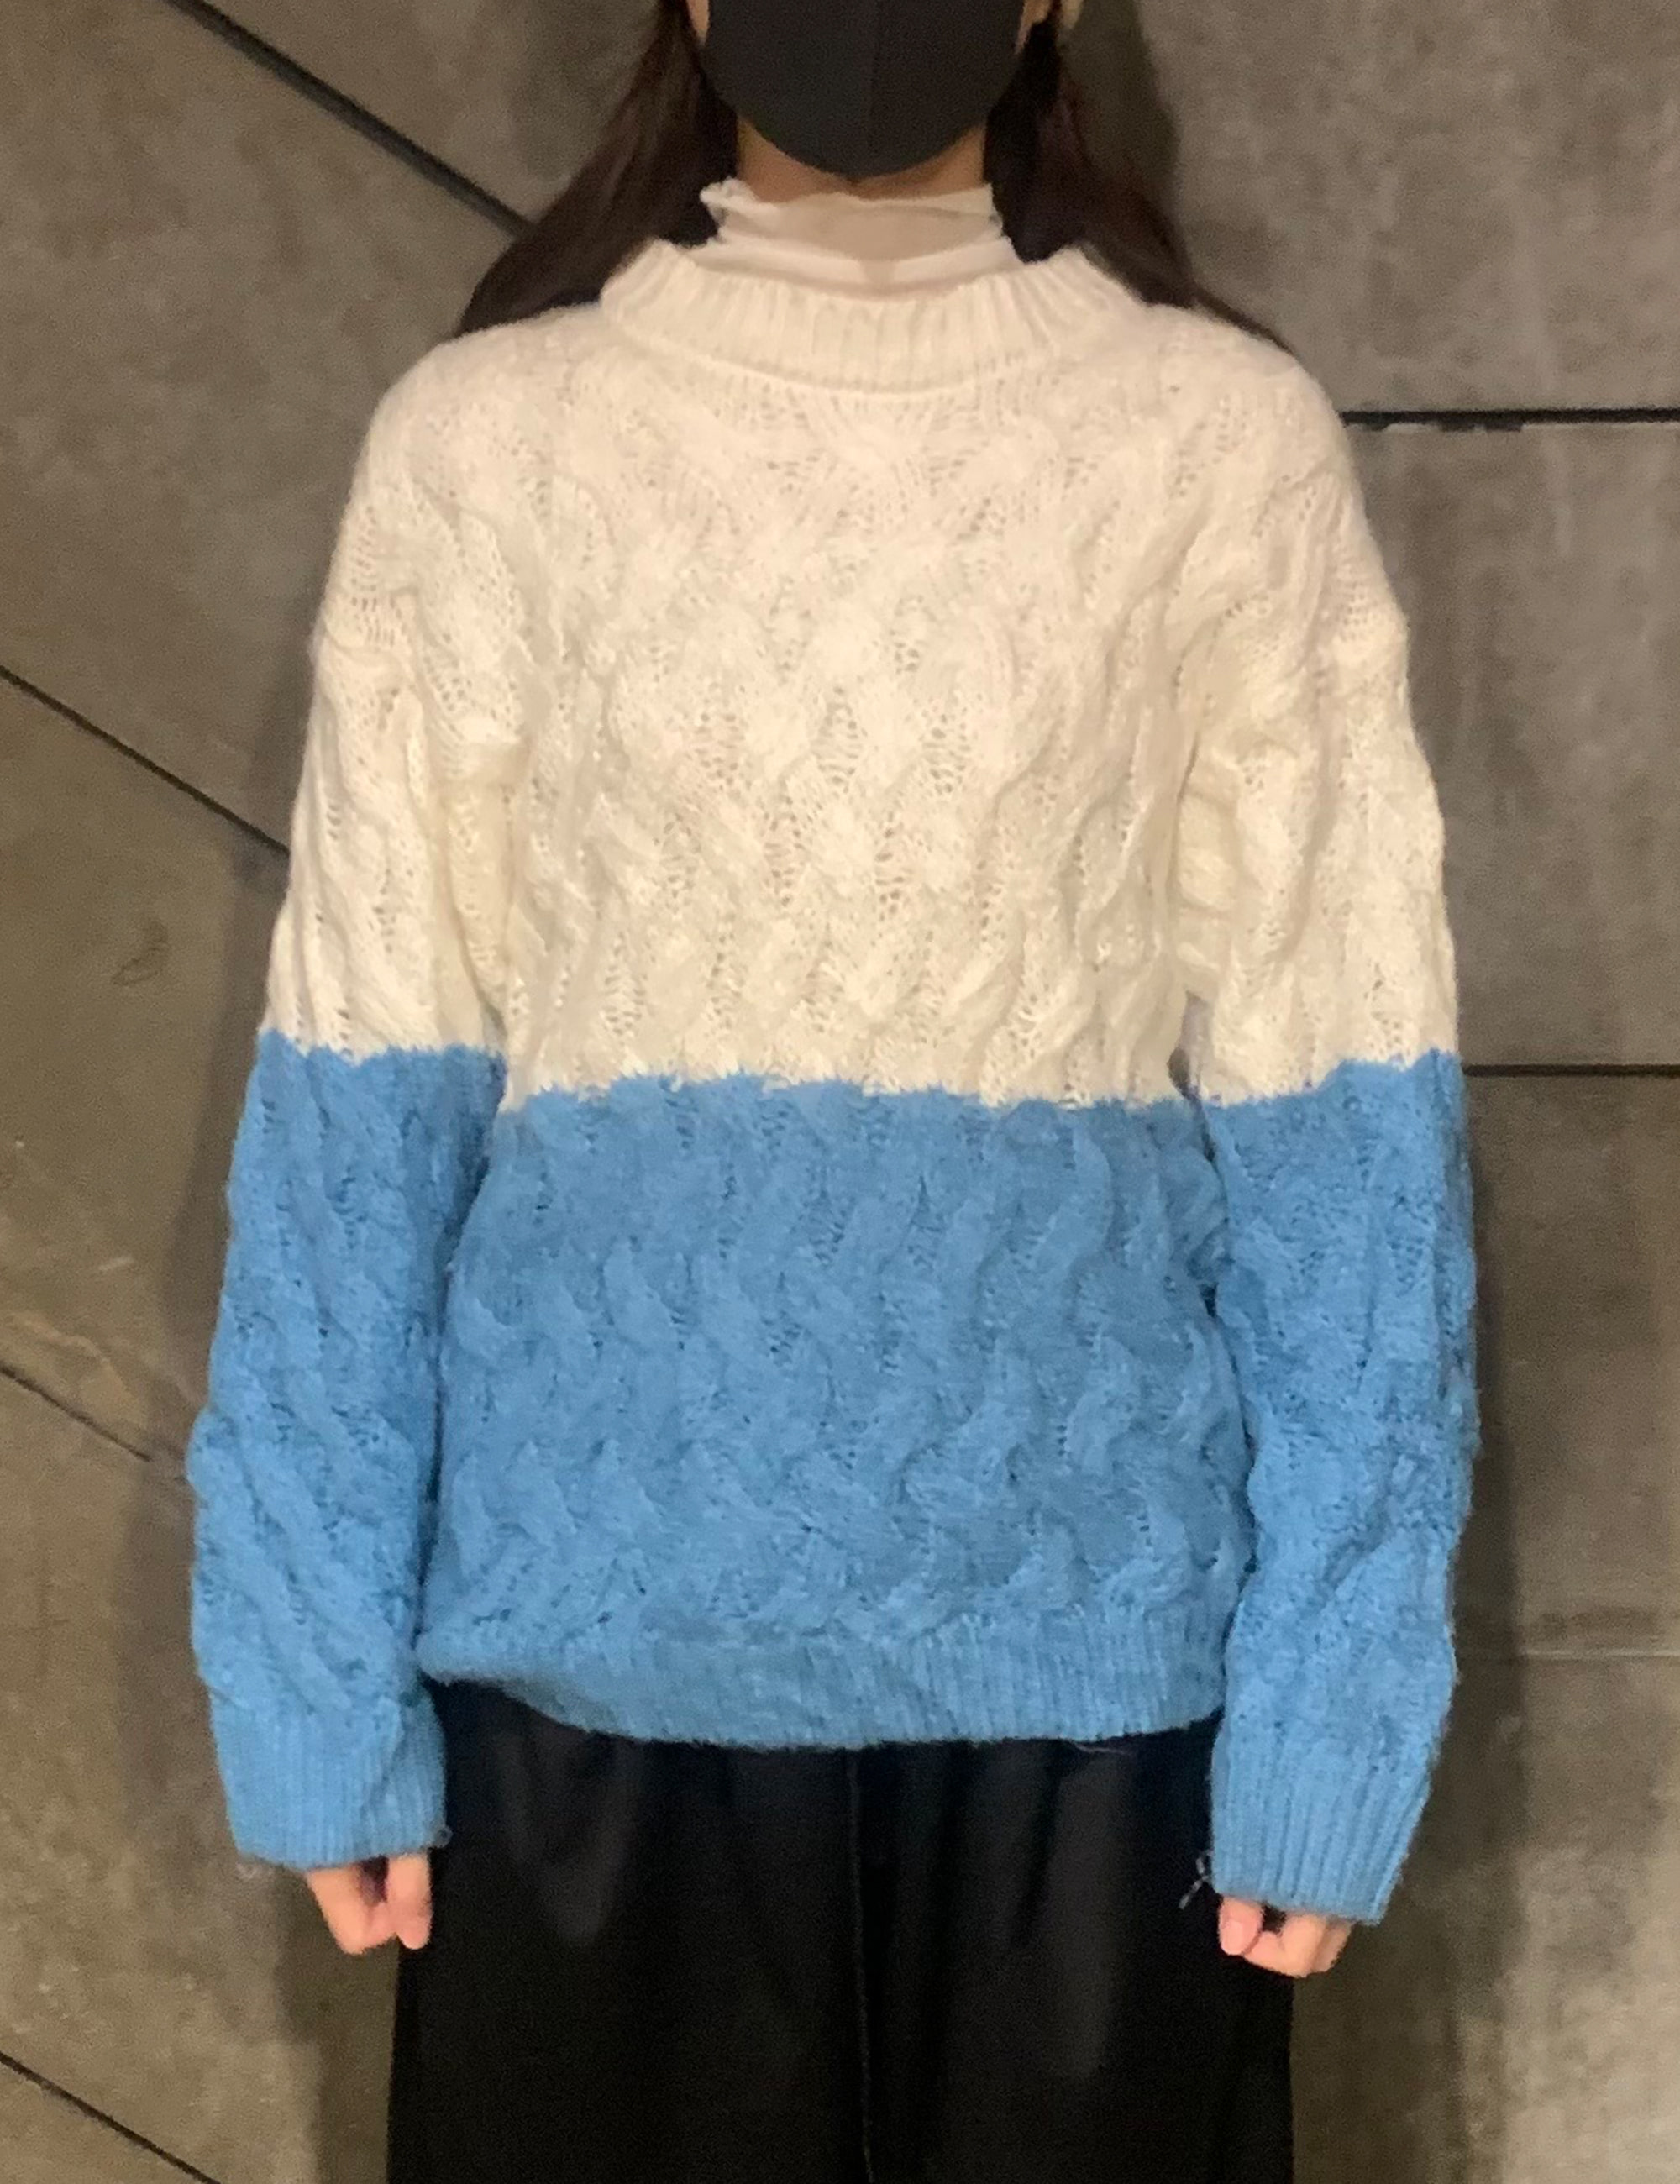 VINTAGE CONTRAST KNIT TOP